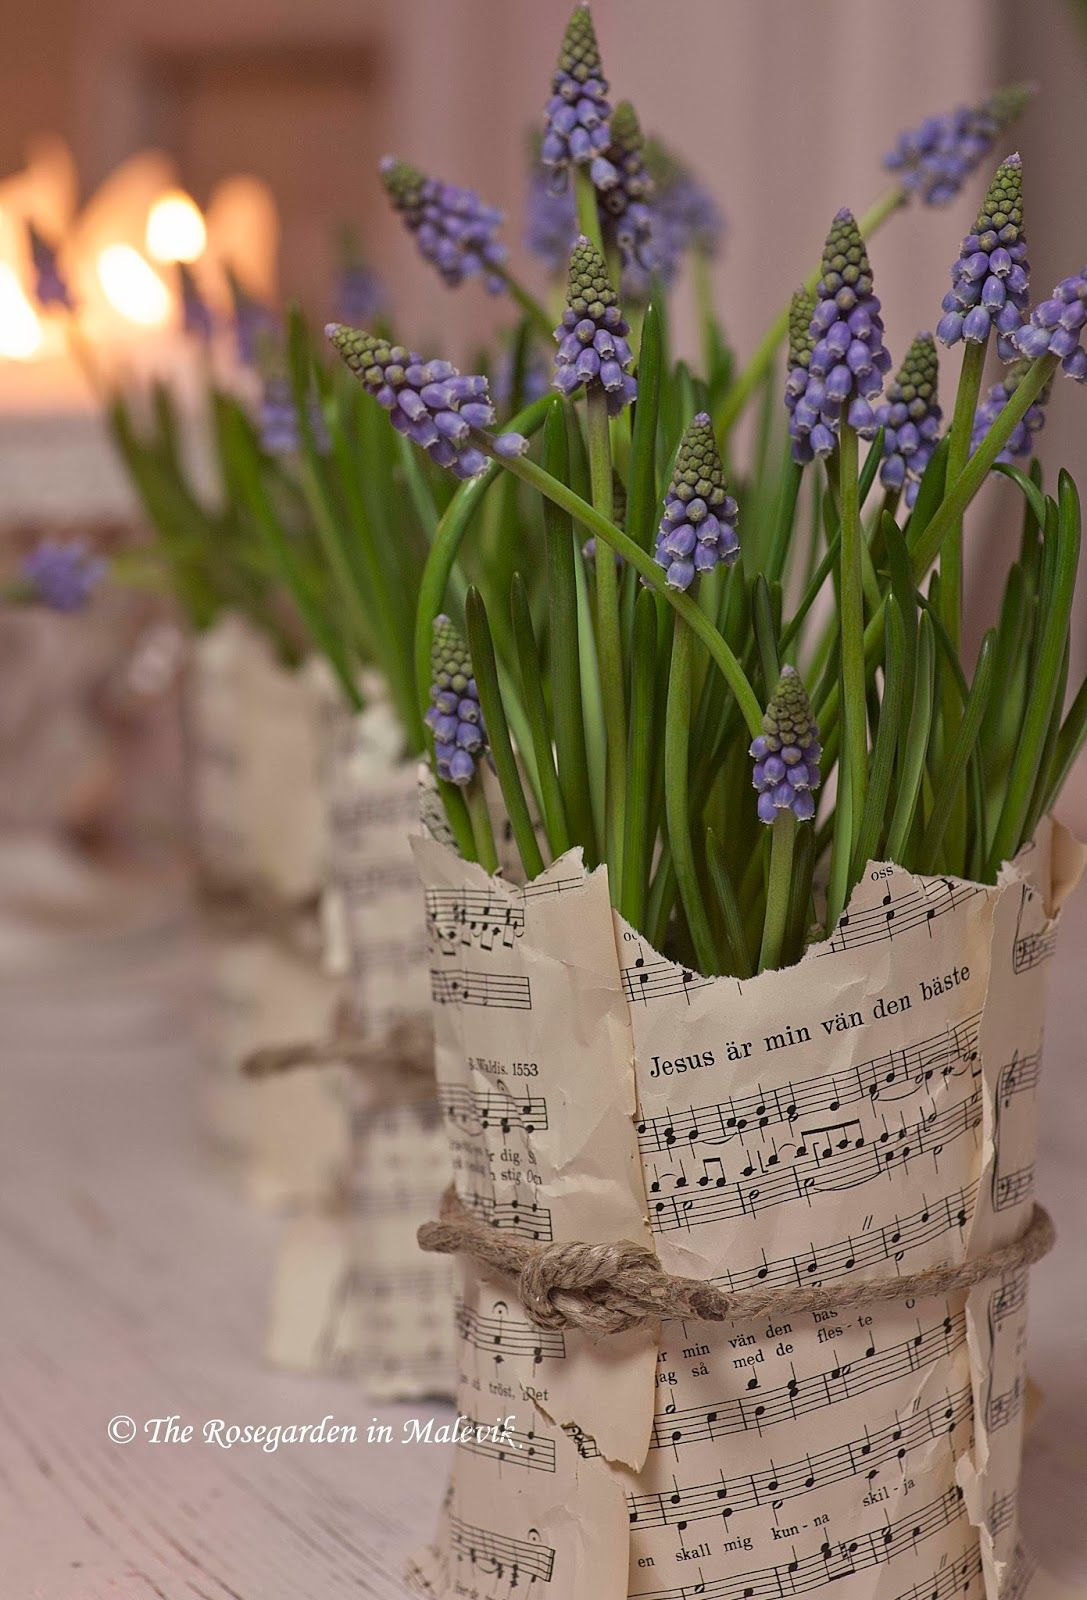 Diy gift idea wrapping up plants flowers using copies of sheet